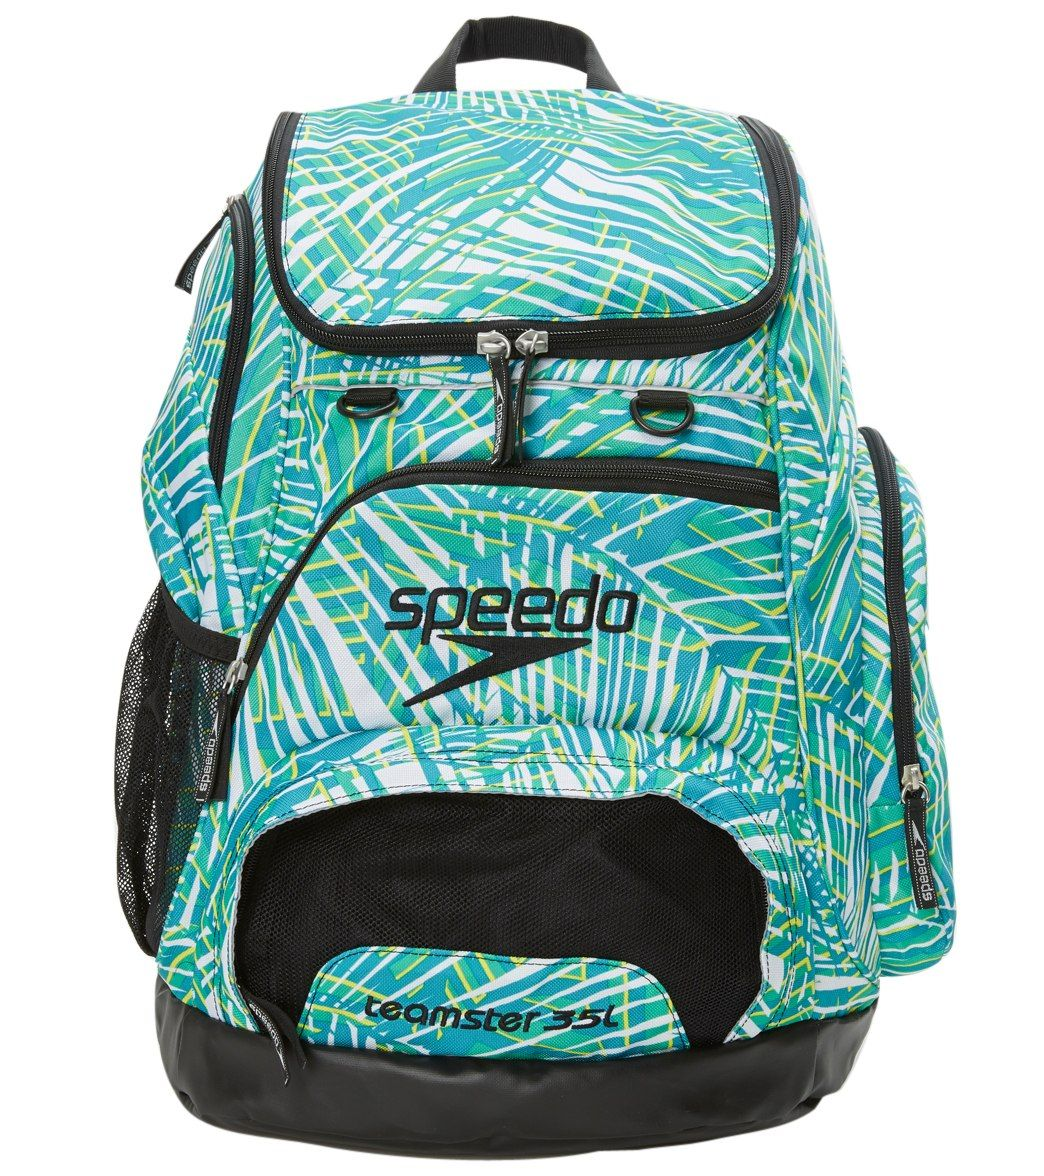 72885b9762 Speedo Large 35L Teamster Backpack at SwimOutlet.com - Free Shipping ...